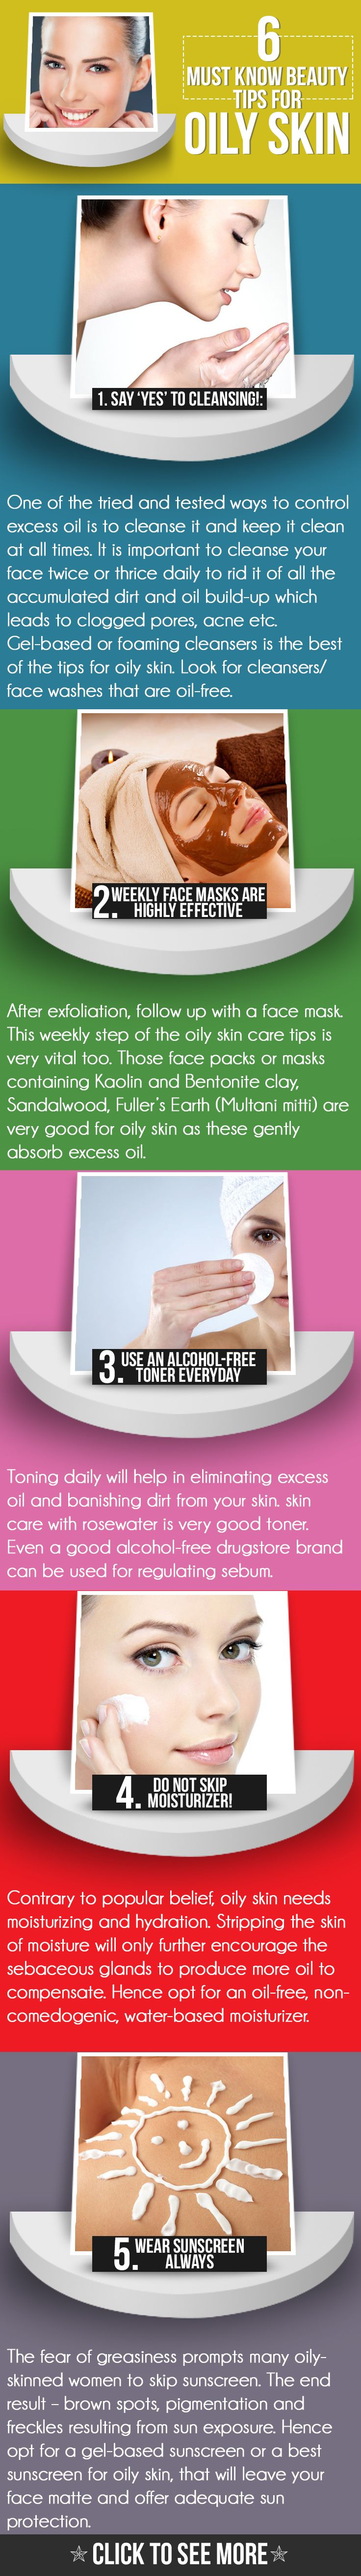 6 Must Know Beauty Tips for Oily Skin 6 Must Know Beauty Tips for Oily Skin new foto